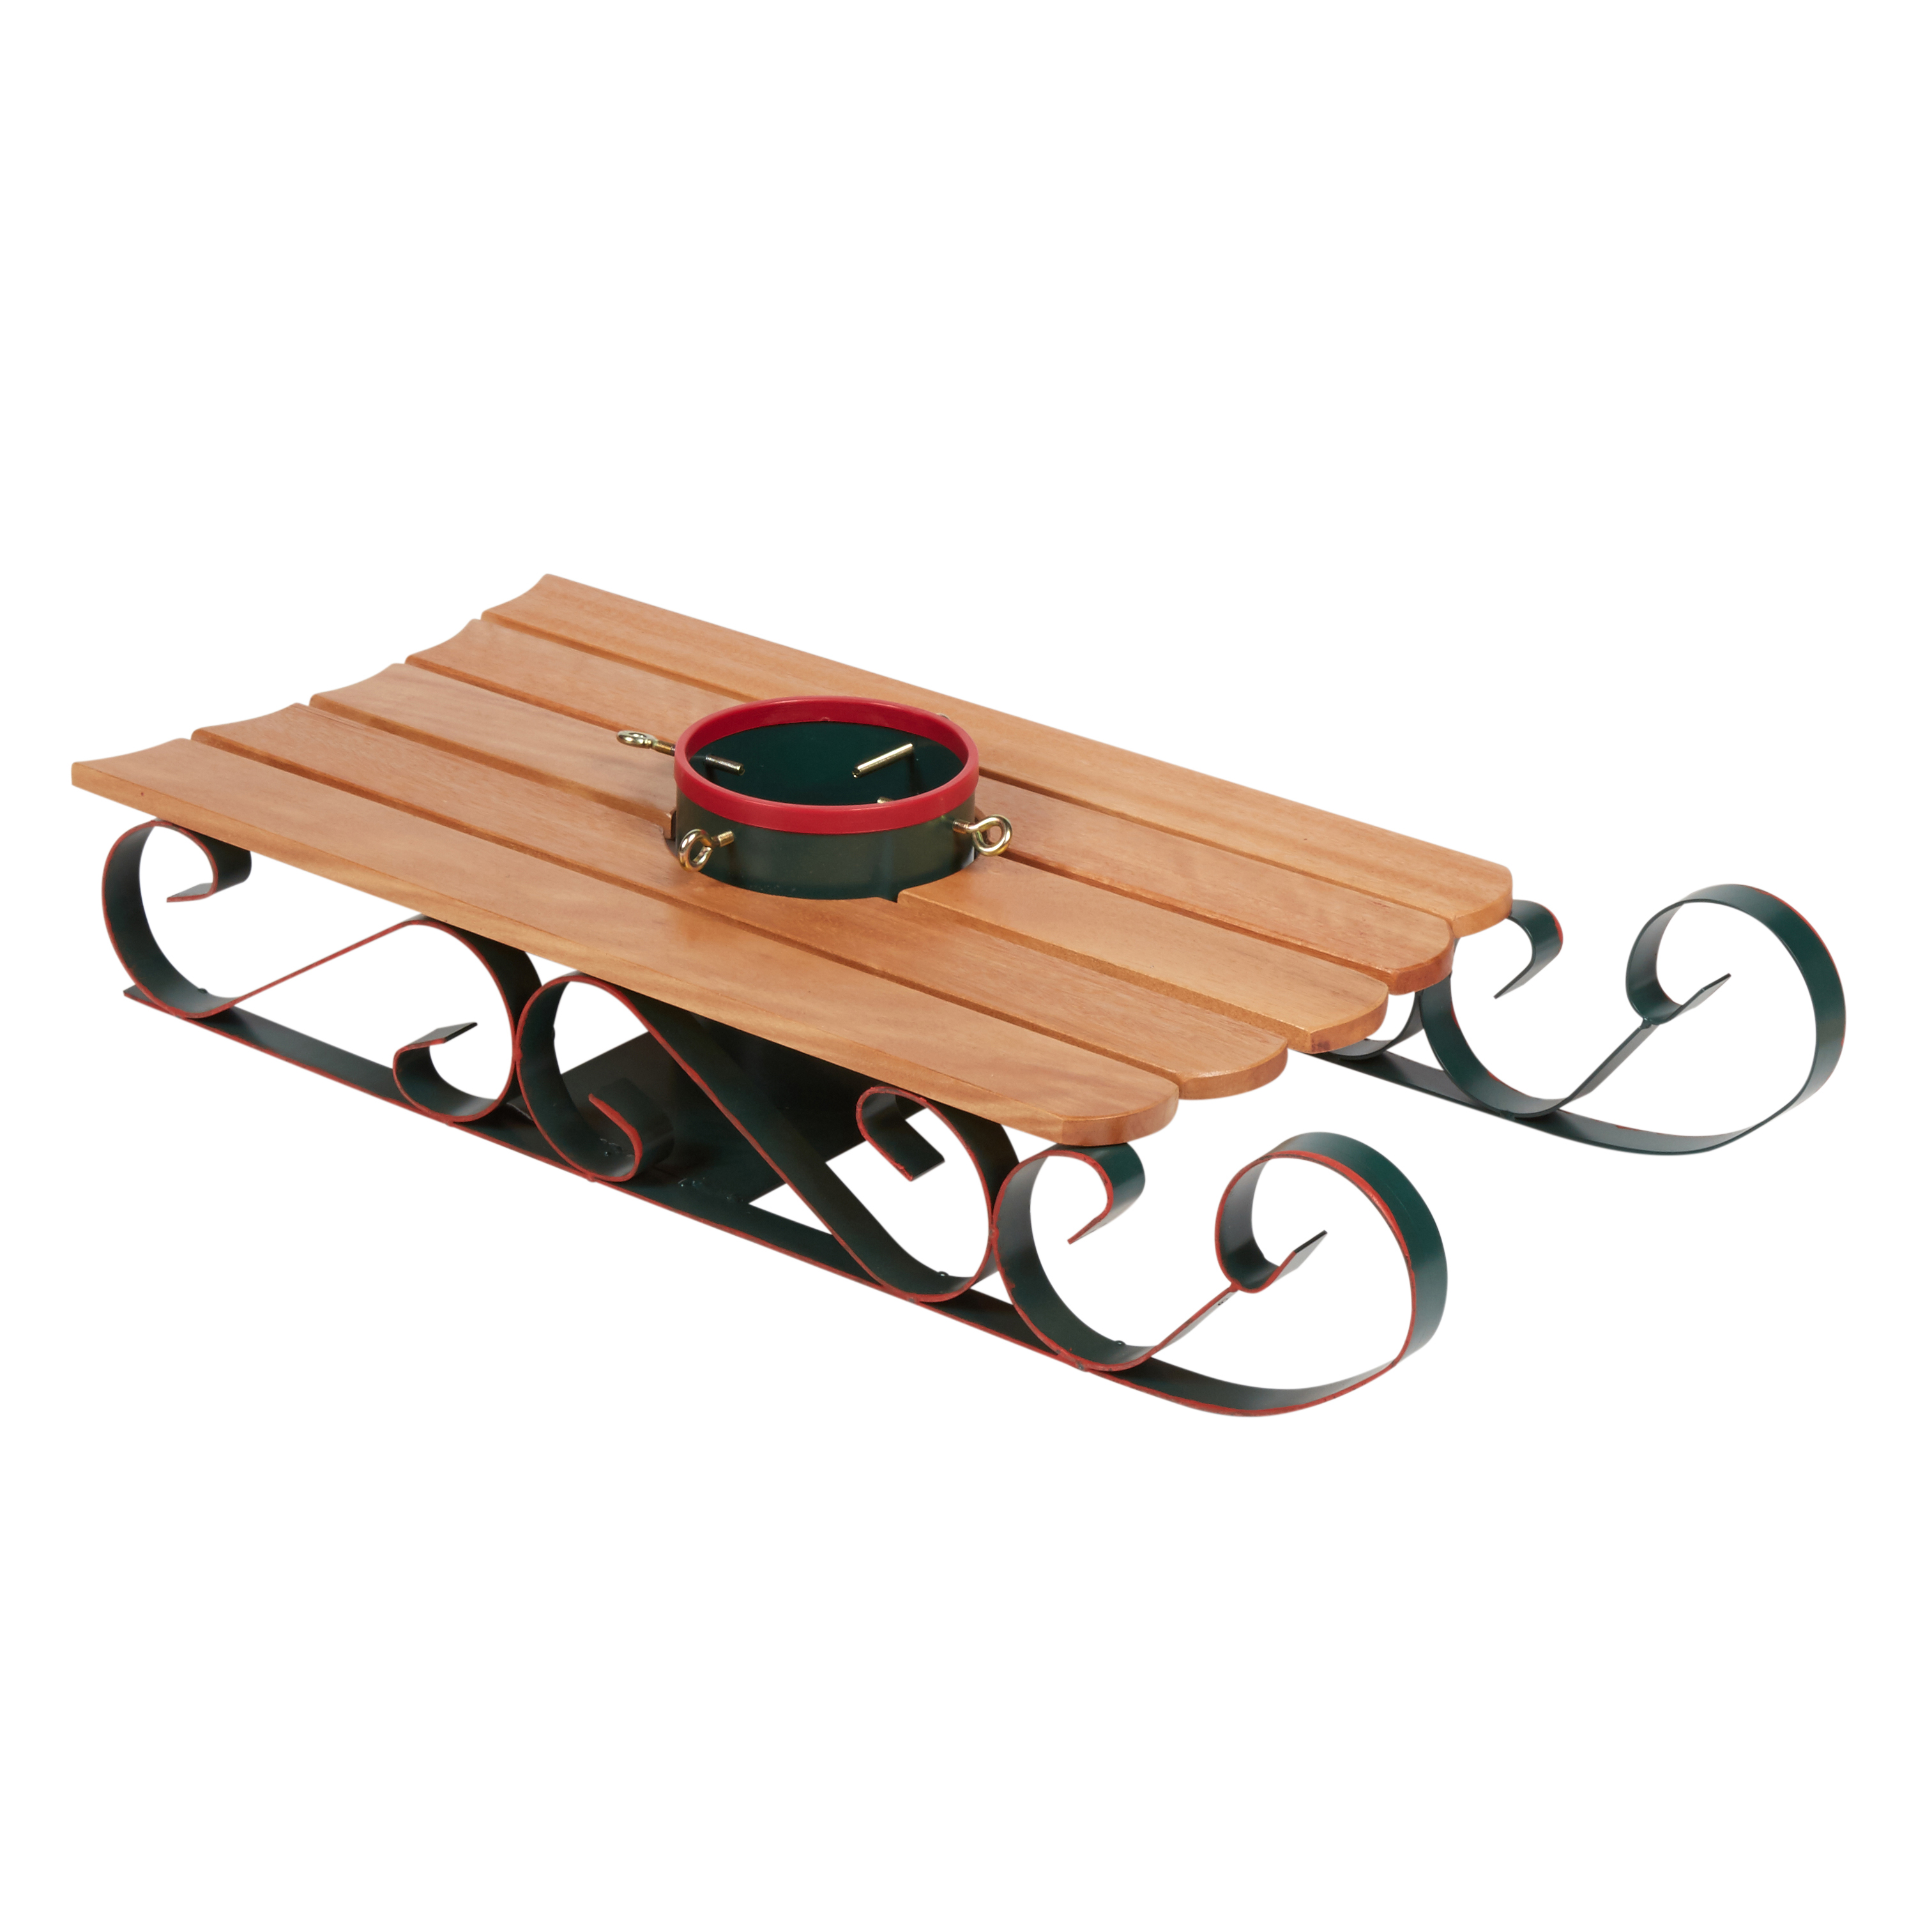 Wood Sled Christmas Tree Stand Christmas Tree Shops And That Home Decor Furniture Gifts Store